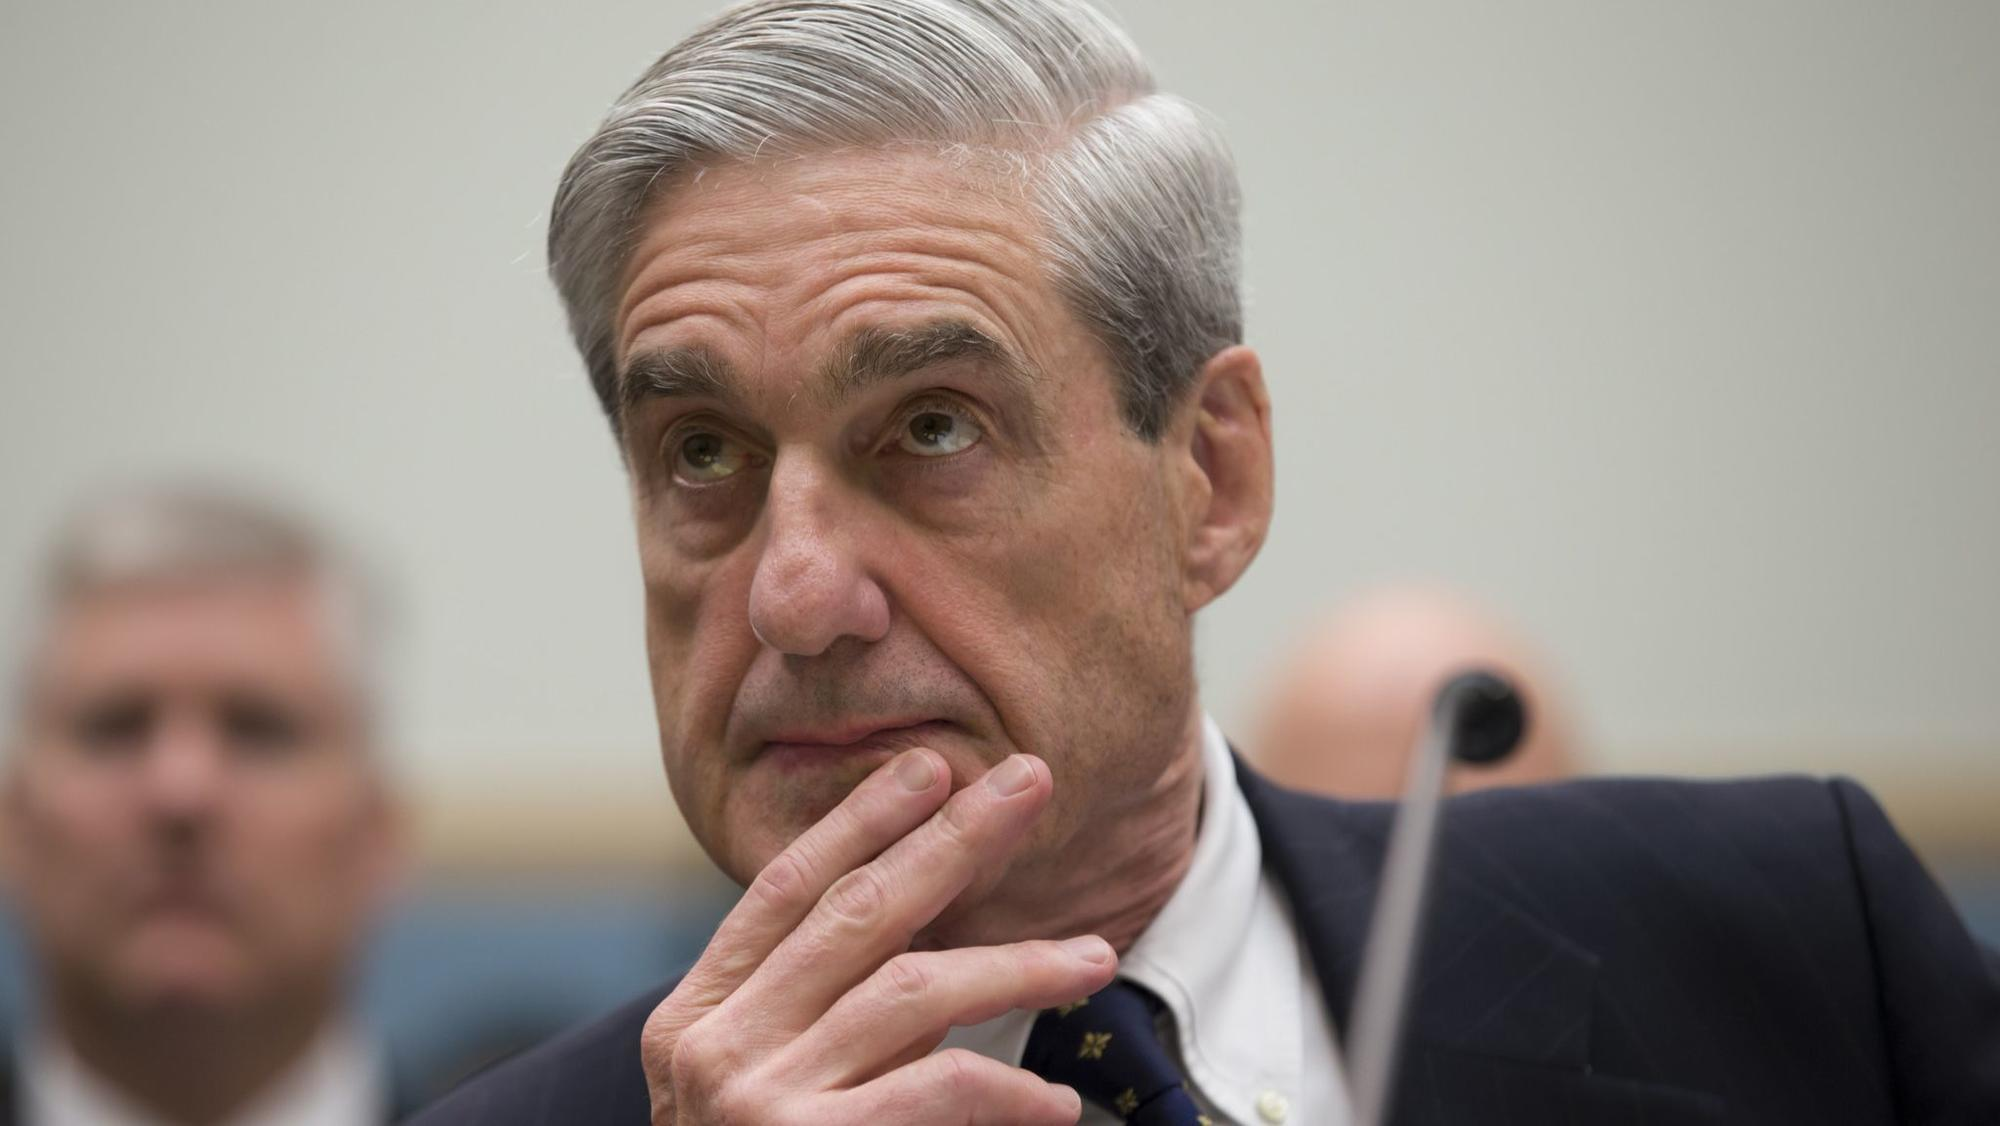 Russian Twitter account gives out classified information about Mueller to discredit him.